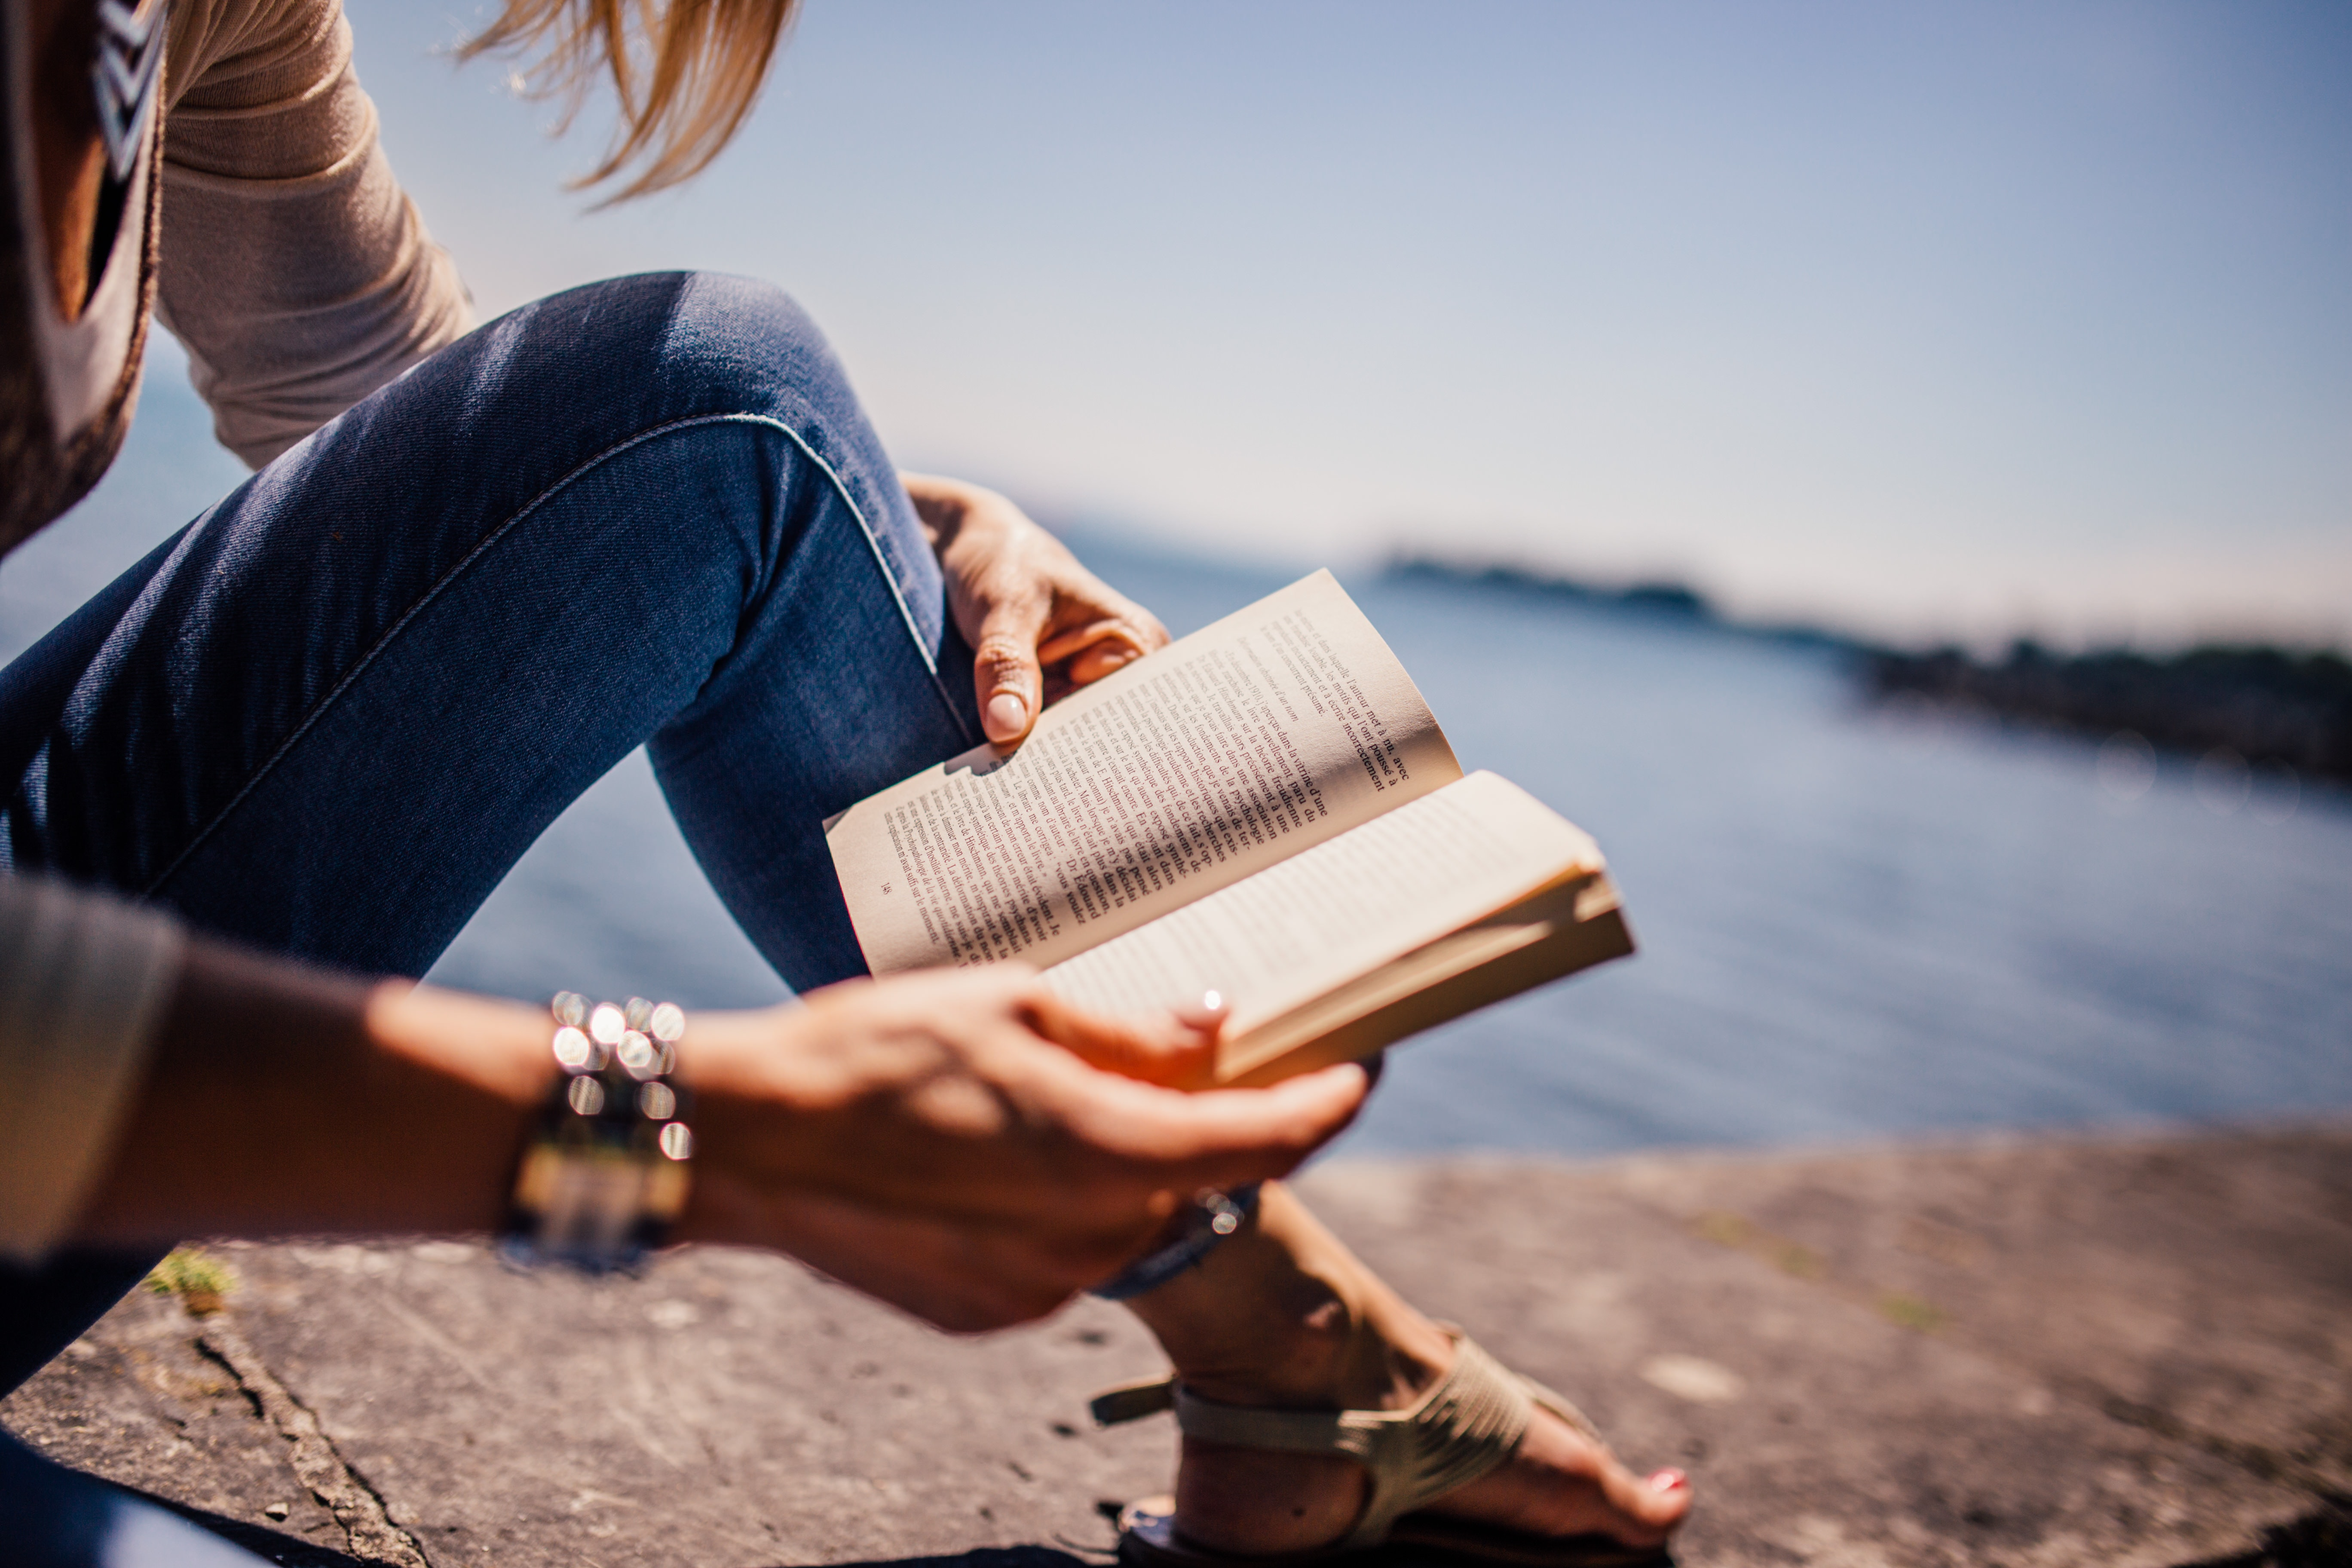 Woman wearing blue denim jeans holding book sitting on gray concrete at daytime photo